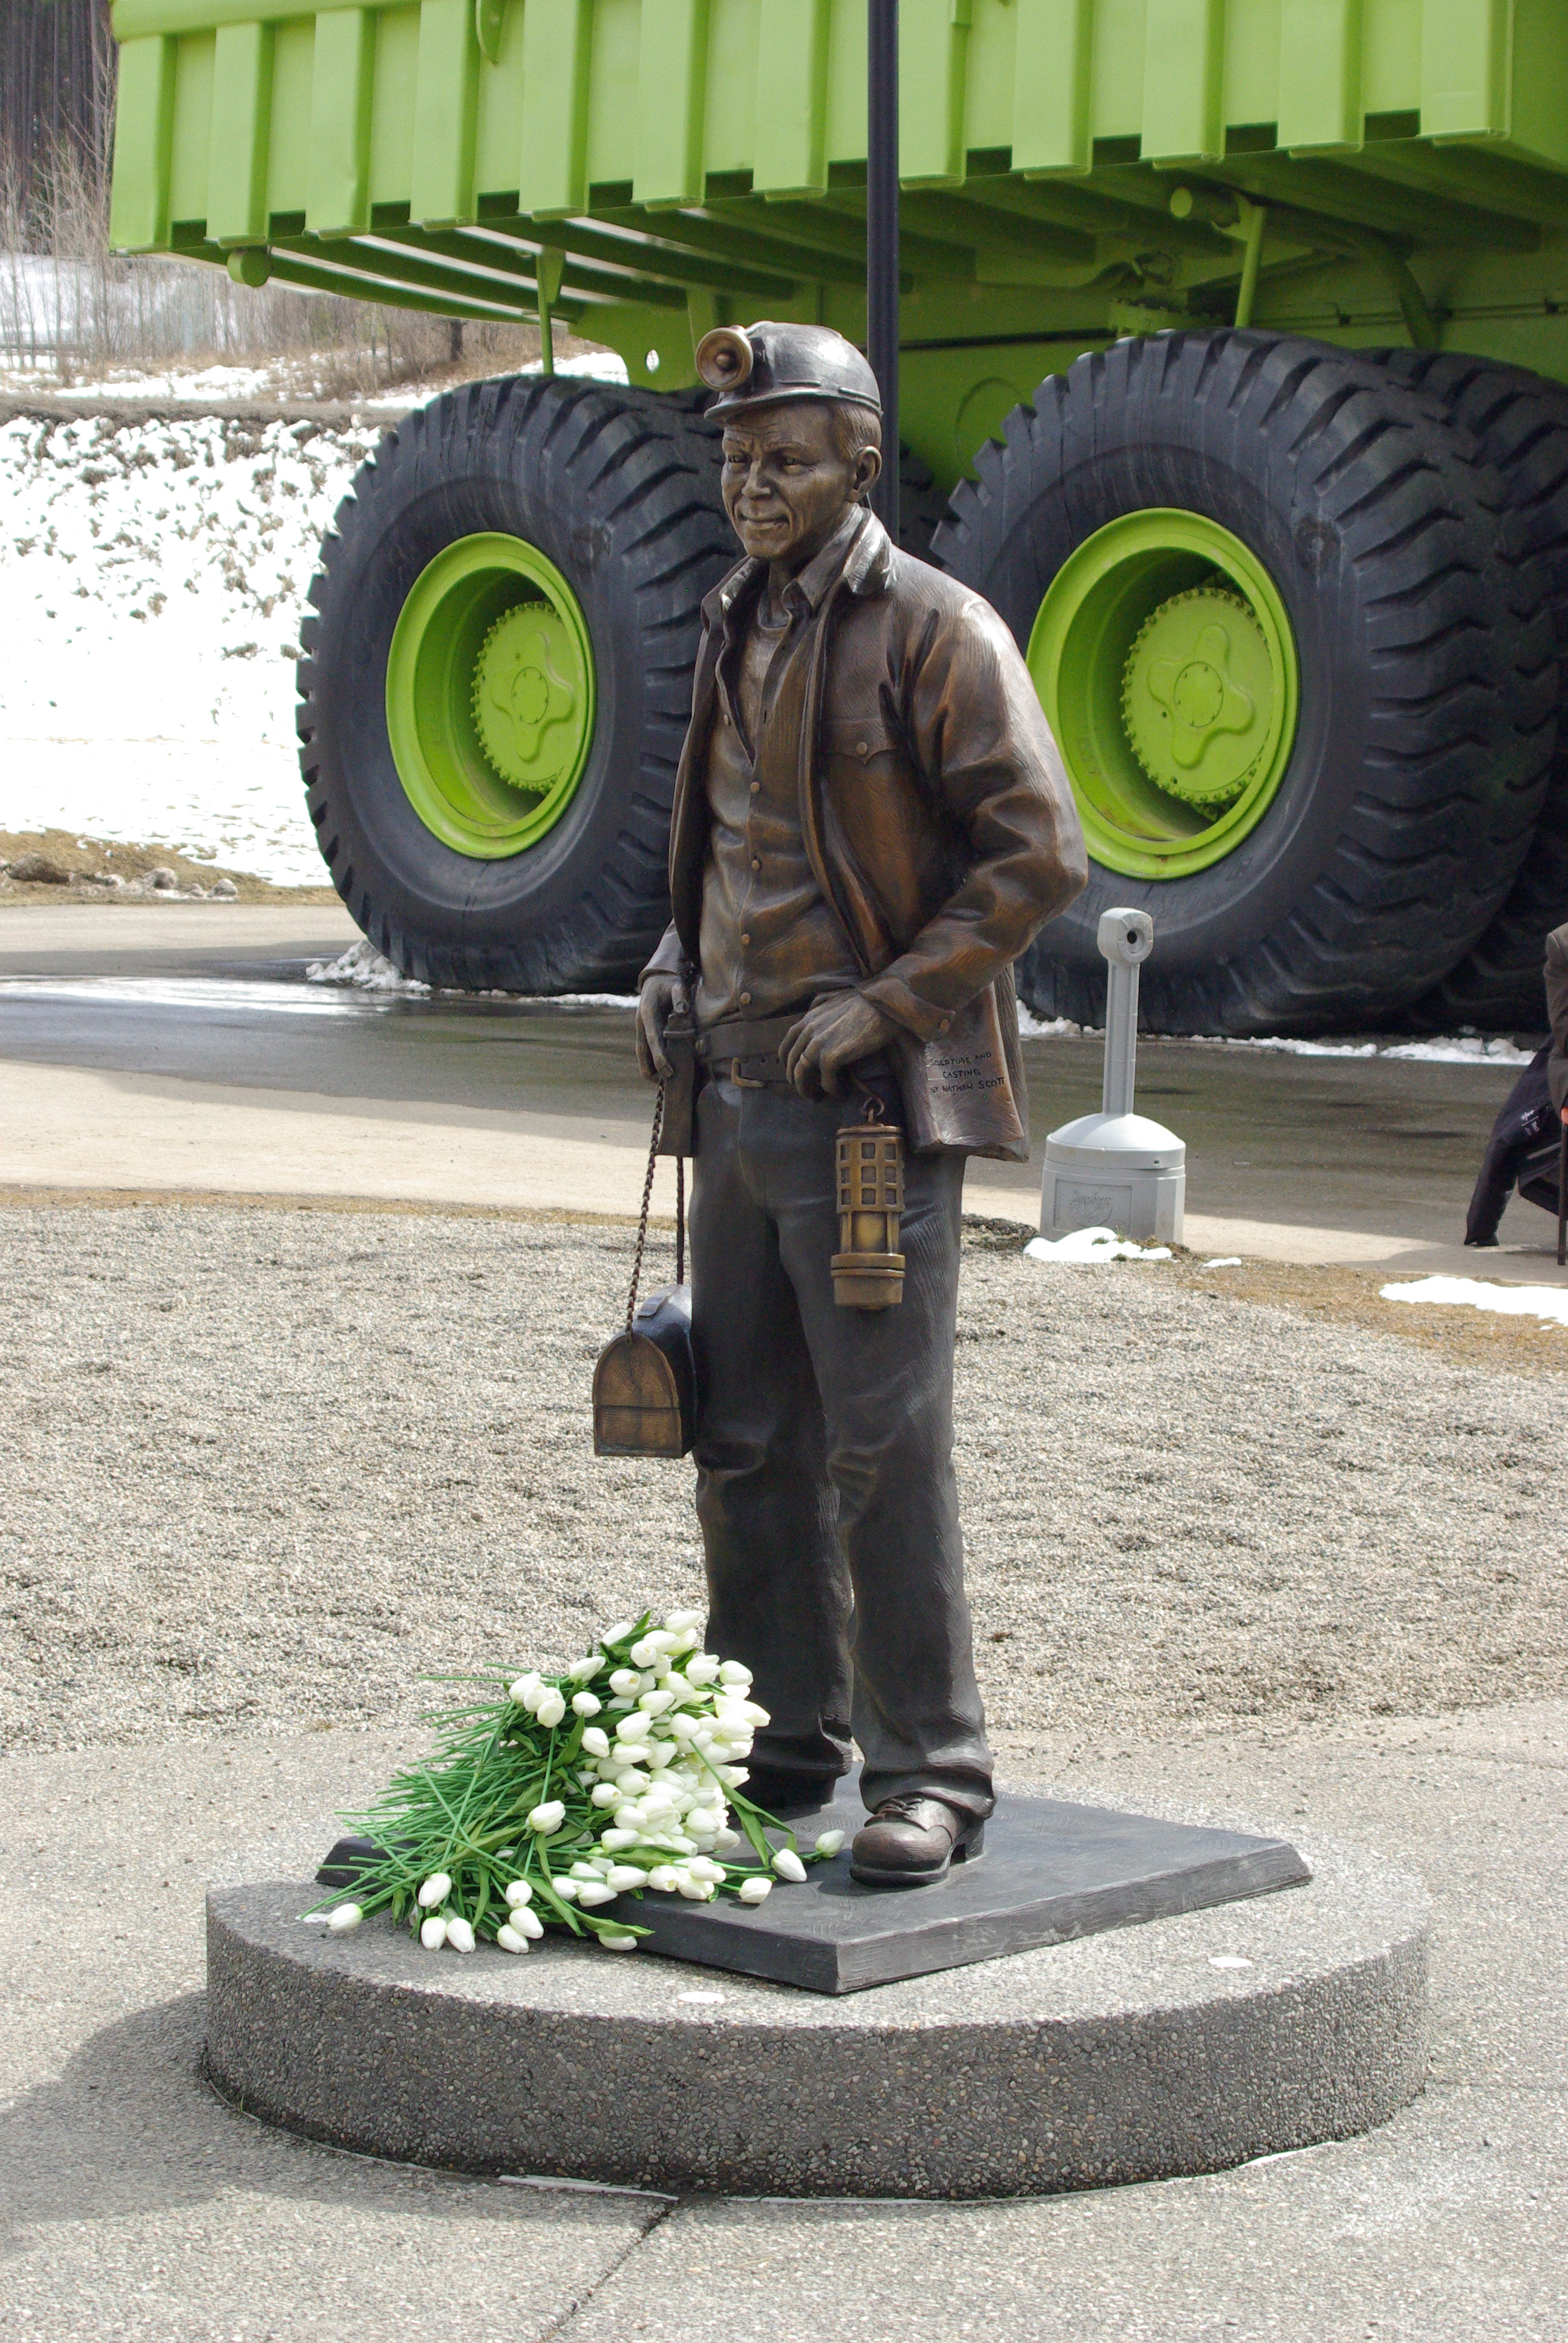 The Sparwood Memorial Miner's statue.